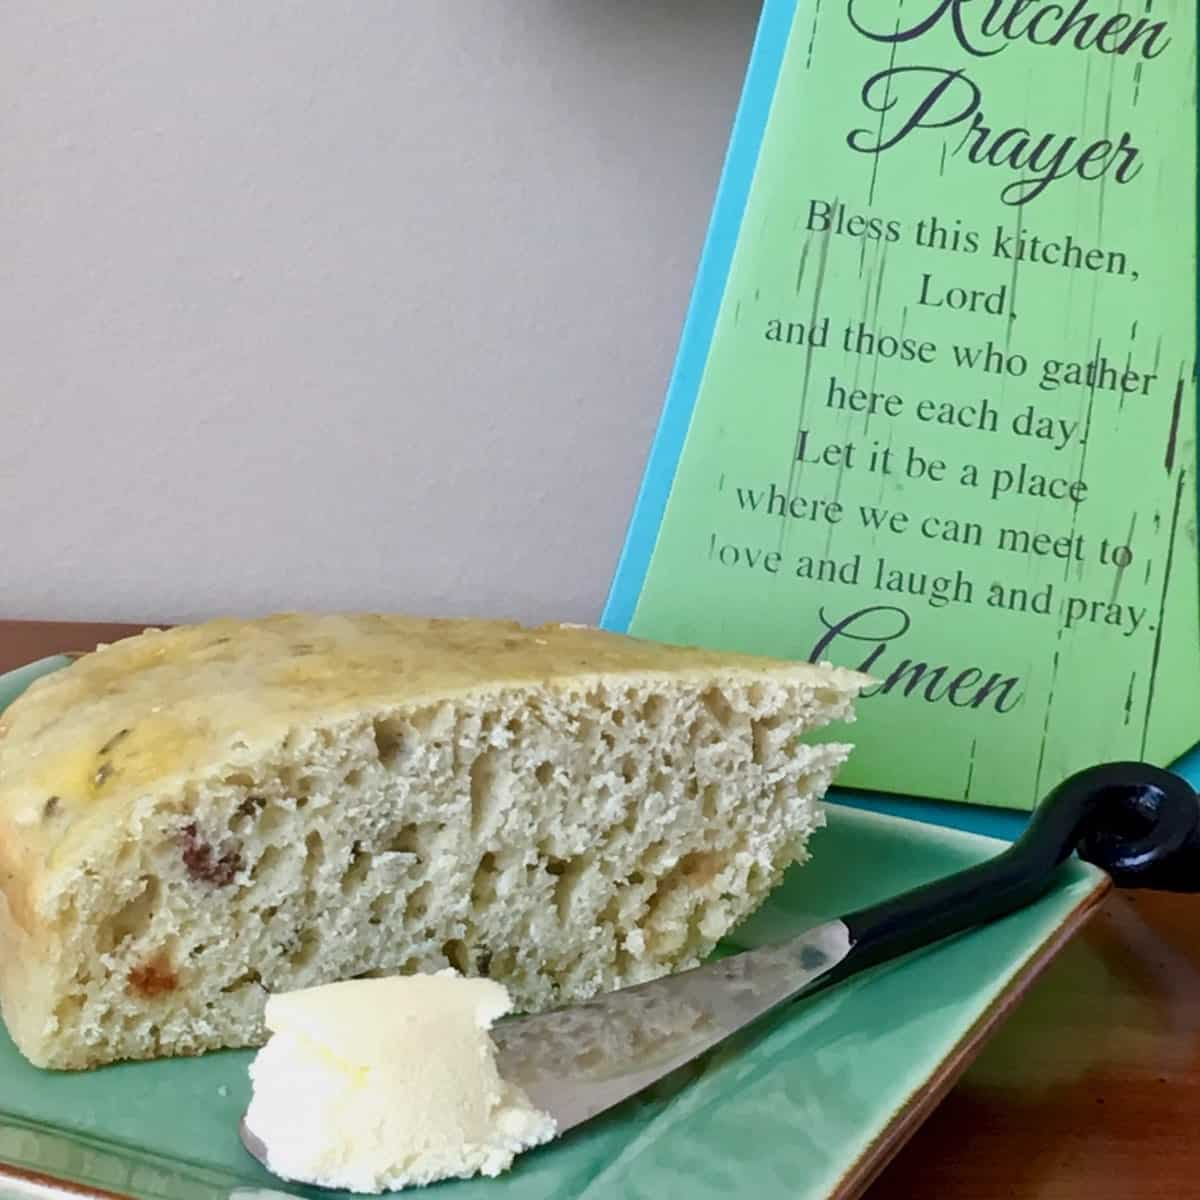 Kitchen prayer and plate of sliced Irish soda bread and butter